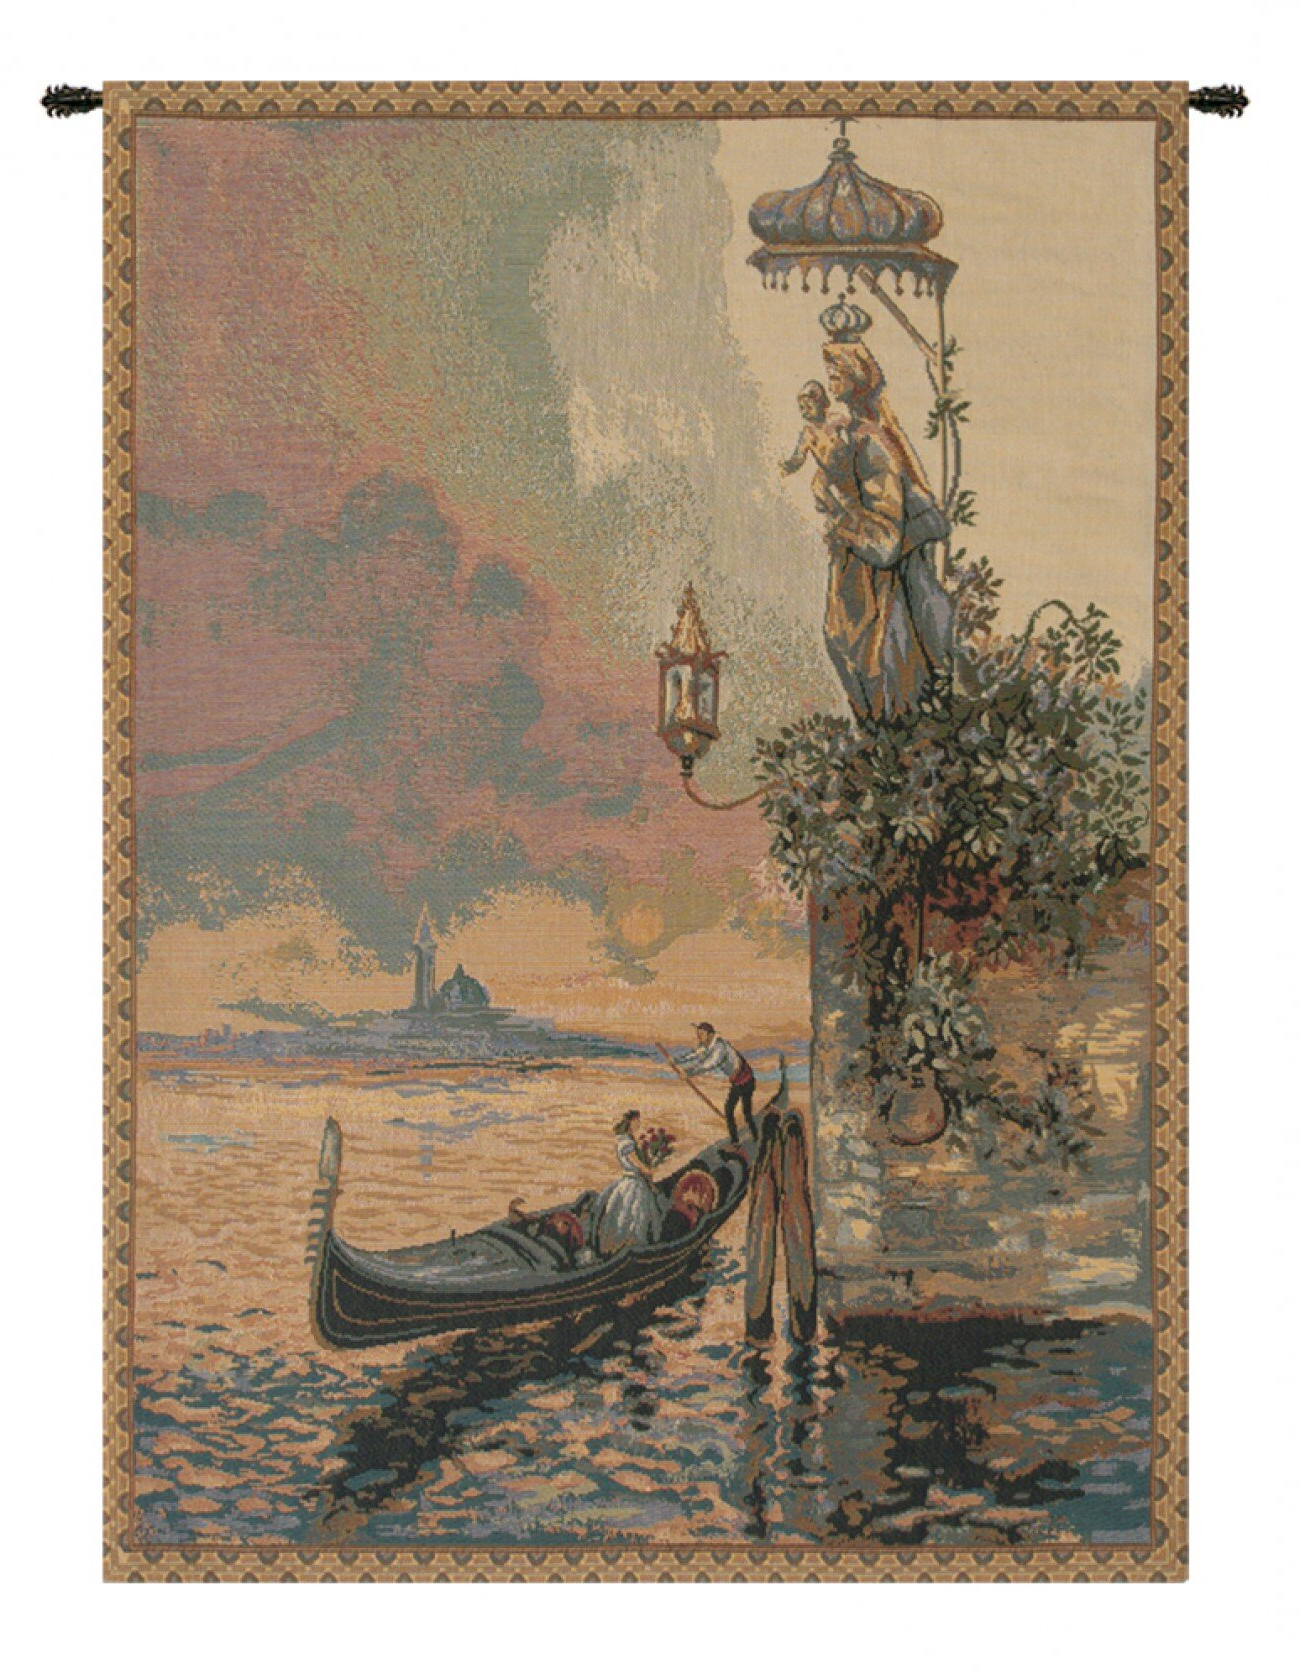 Well Known Blended Fabric Autumn Tranquility Verse Wall Hangings For Spiritual & Inspirational Tapestries You'll Love In (View 16 of 20)